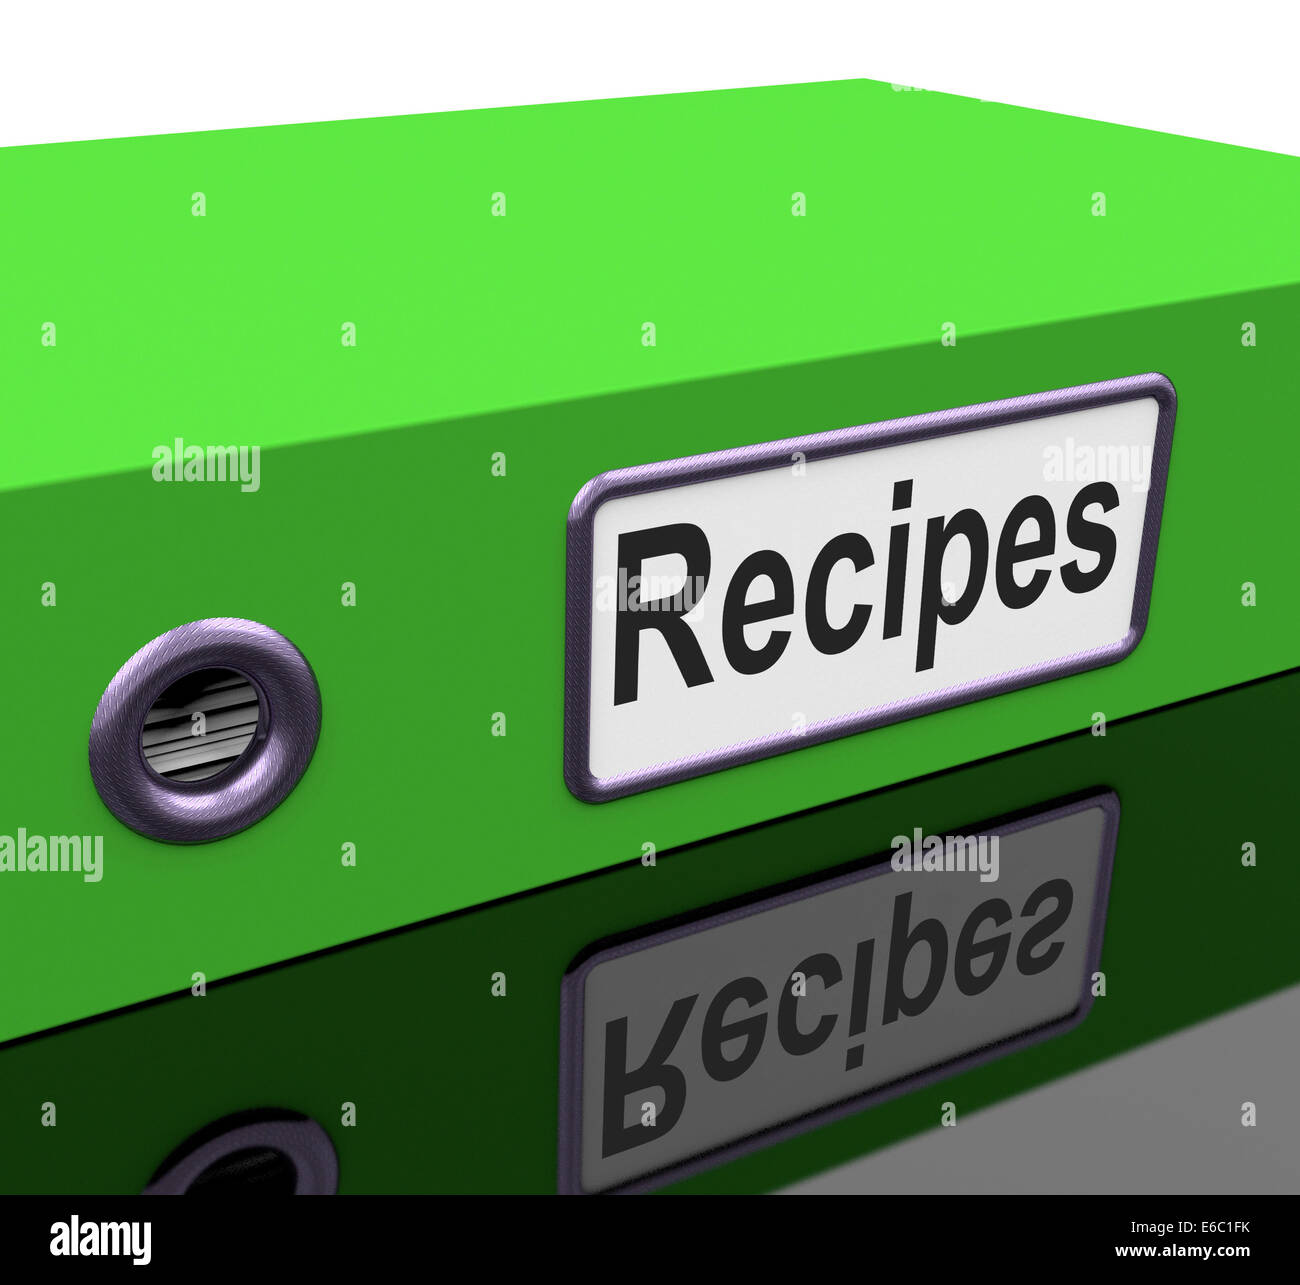 File recipes meaning food preparation and business stock photo file recipes meaning food preparation and business forumfinder Choice Image